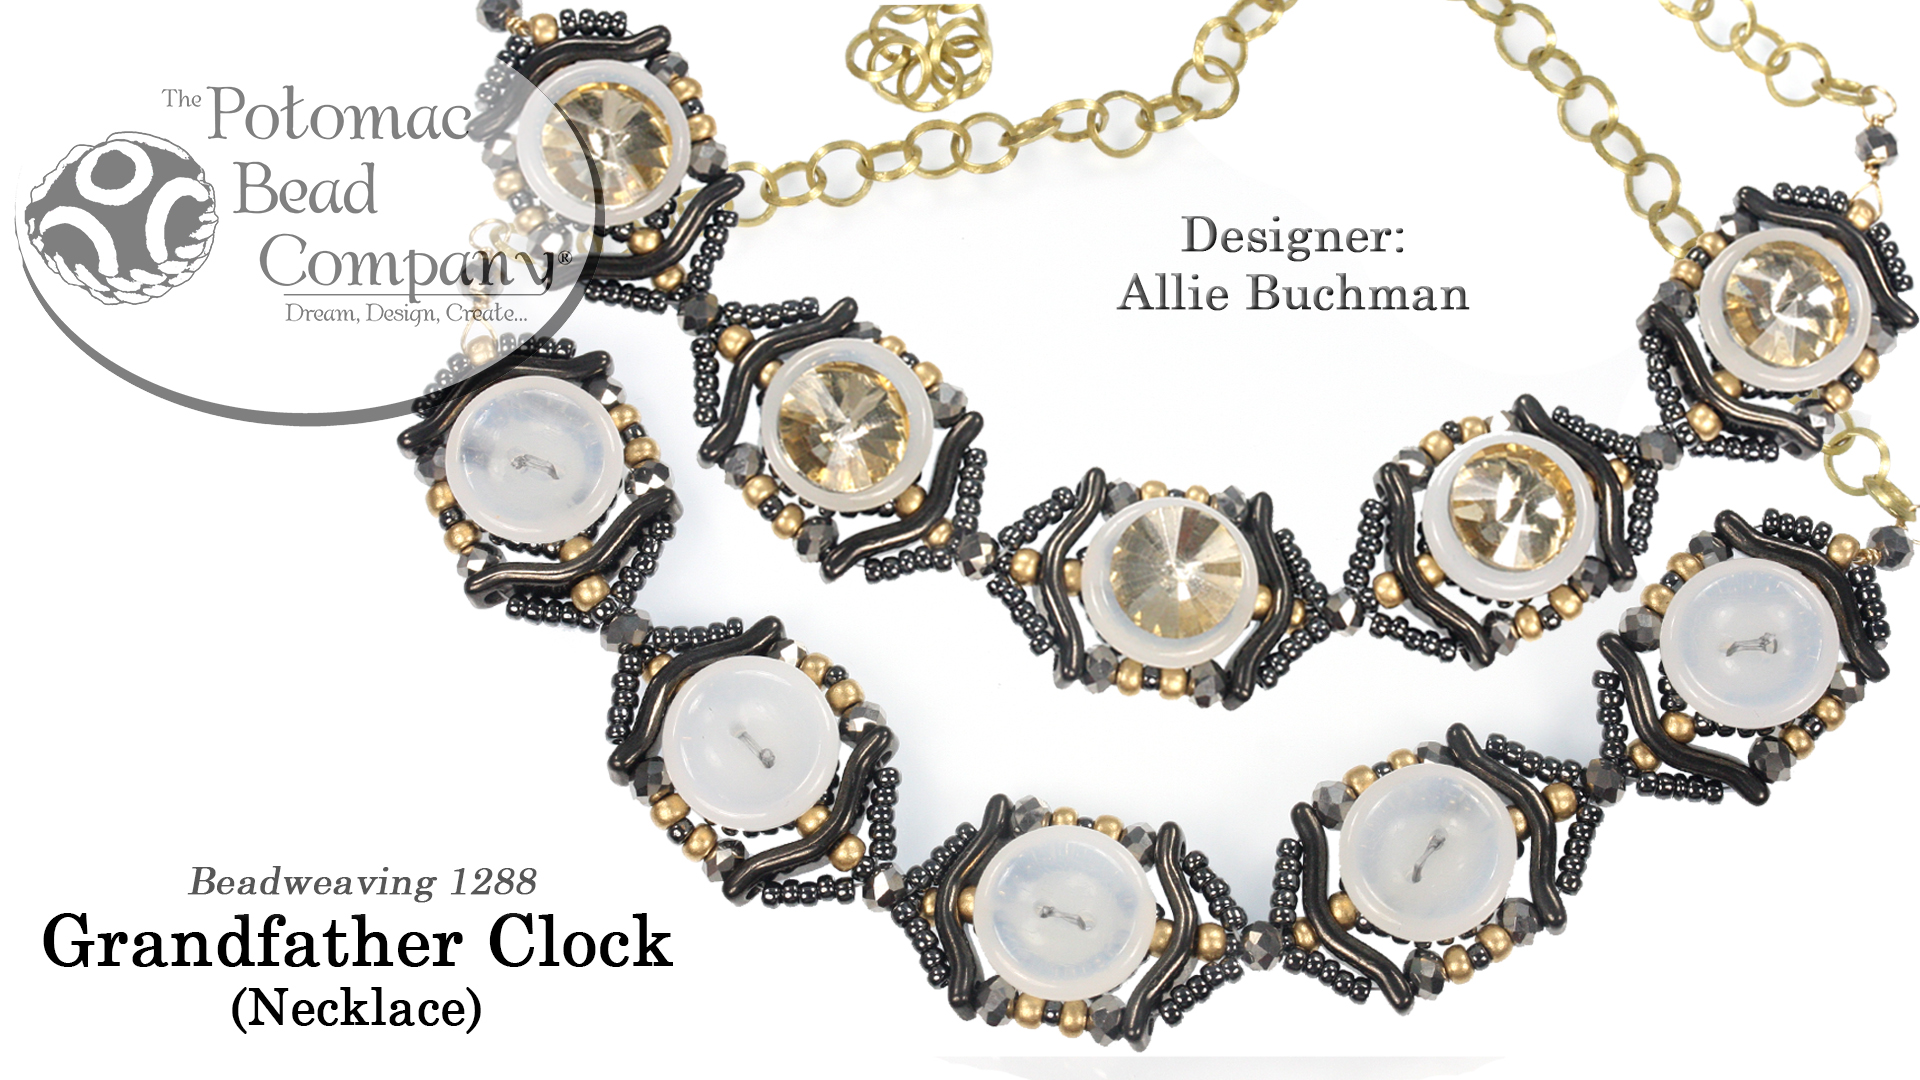 How to Bead Jewelry / Videos Sorted by Beads / Potomac Crystal Videos / Grandfather Clock Necklace Tutorial